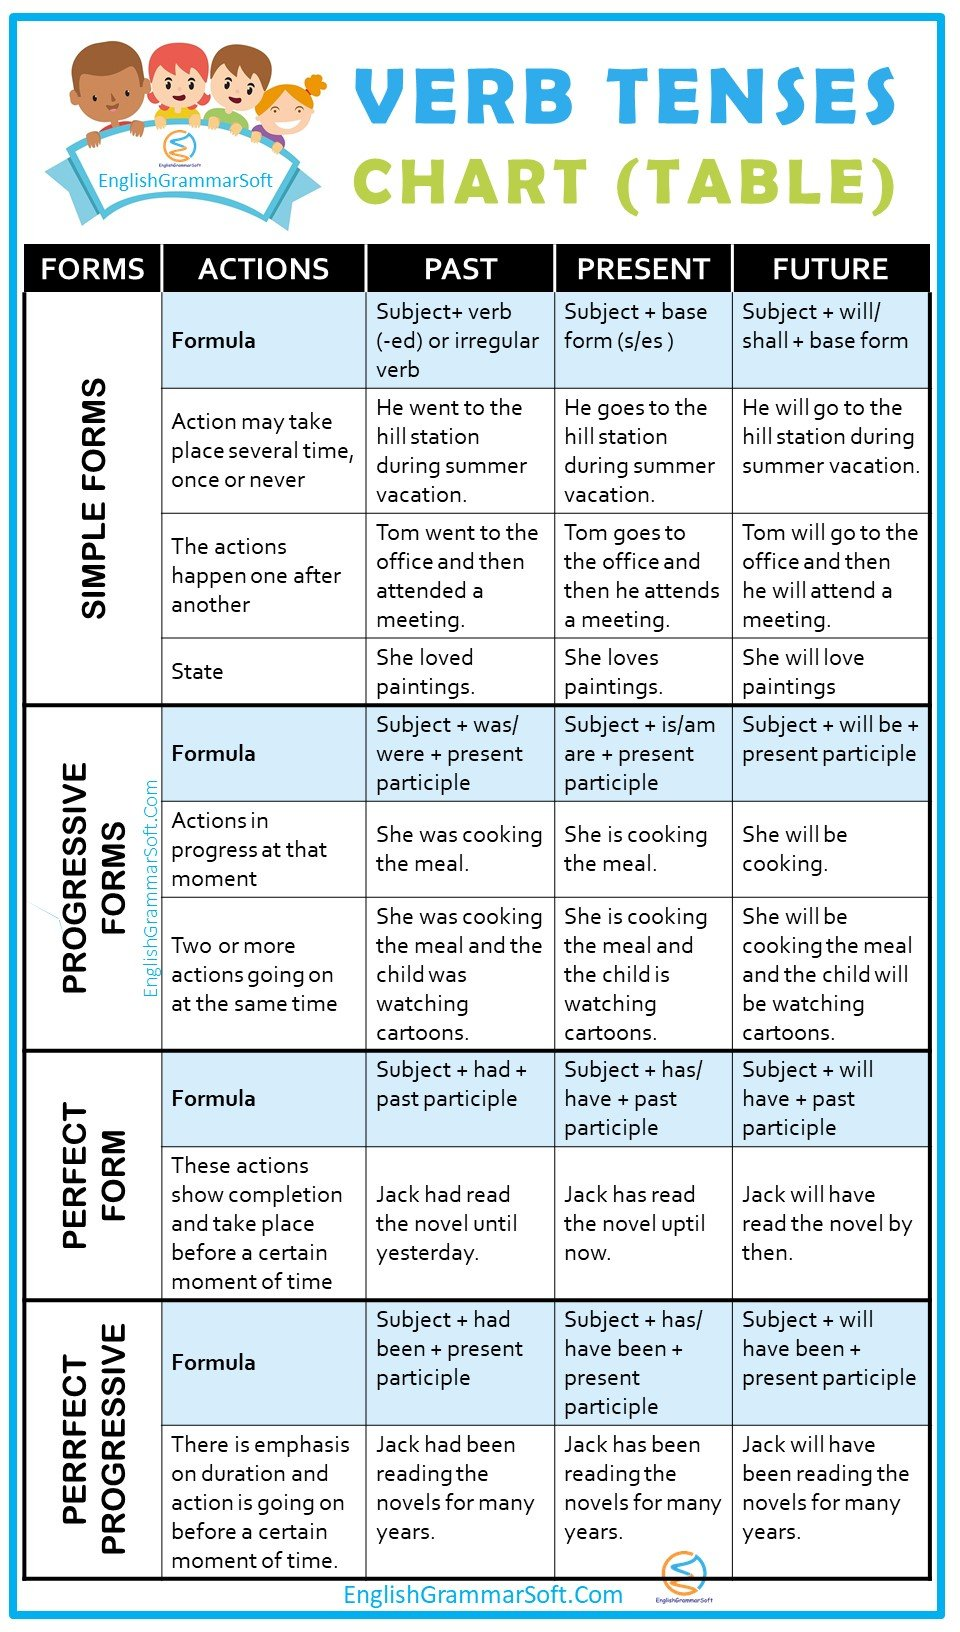 Verb Tenses Chart & Table with Examples